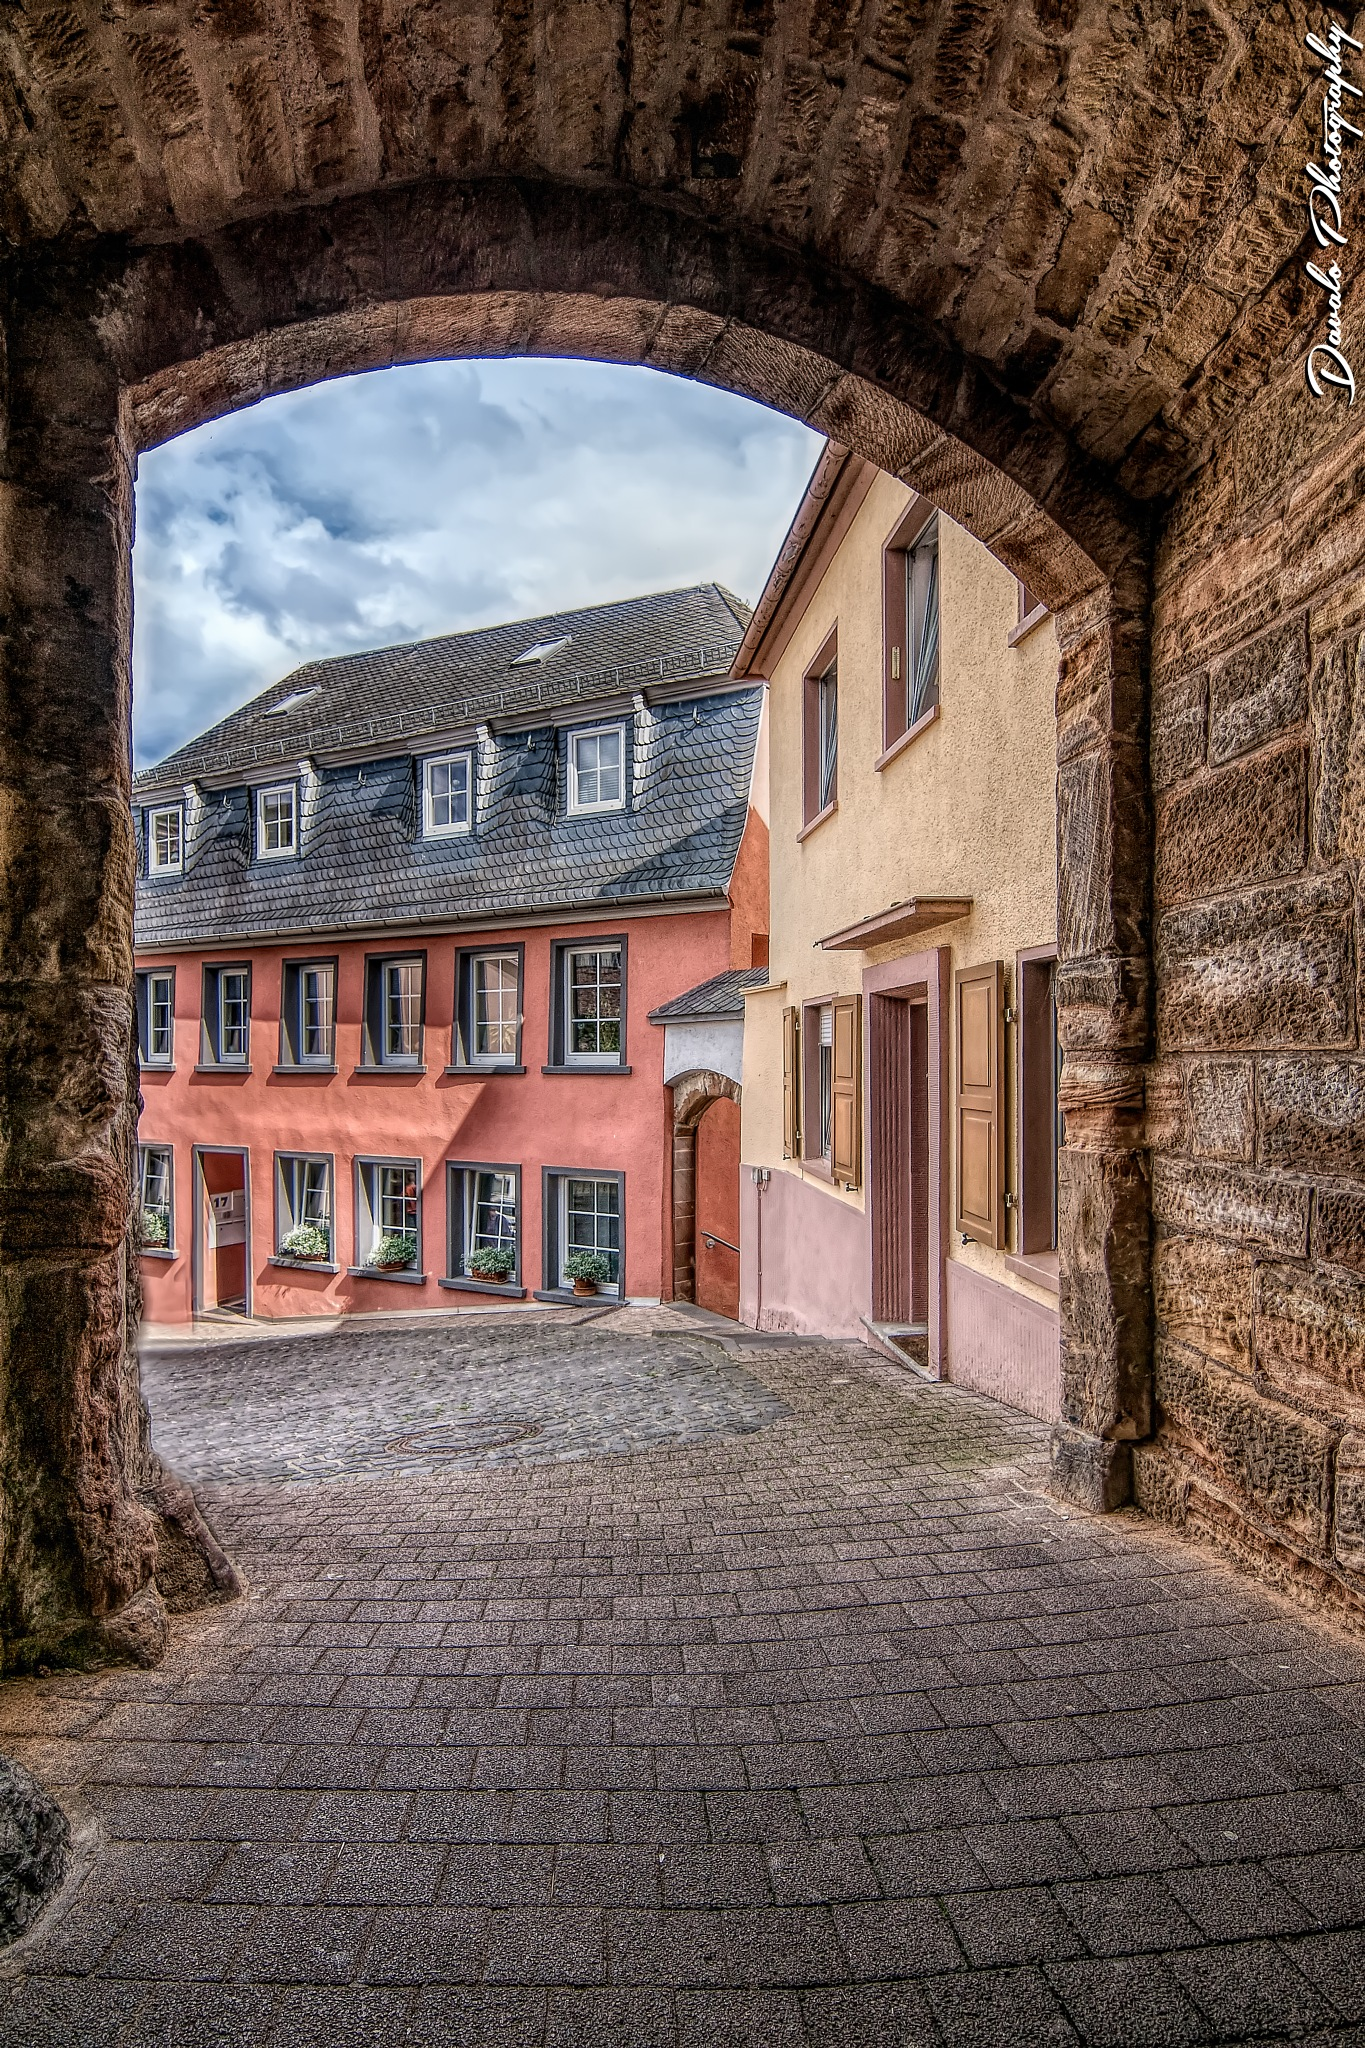 Saarburg (Germany) by Davalo Photography